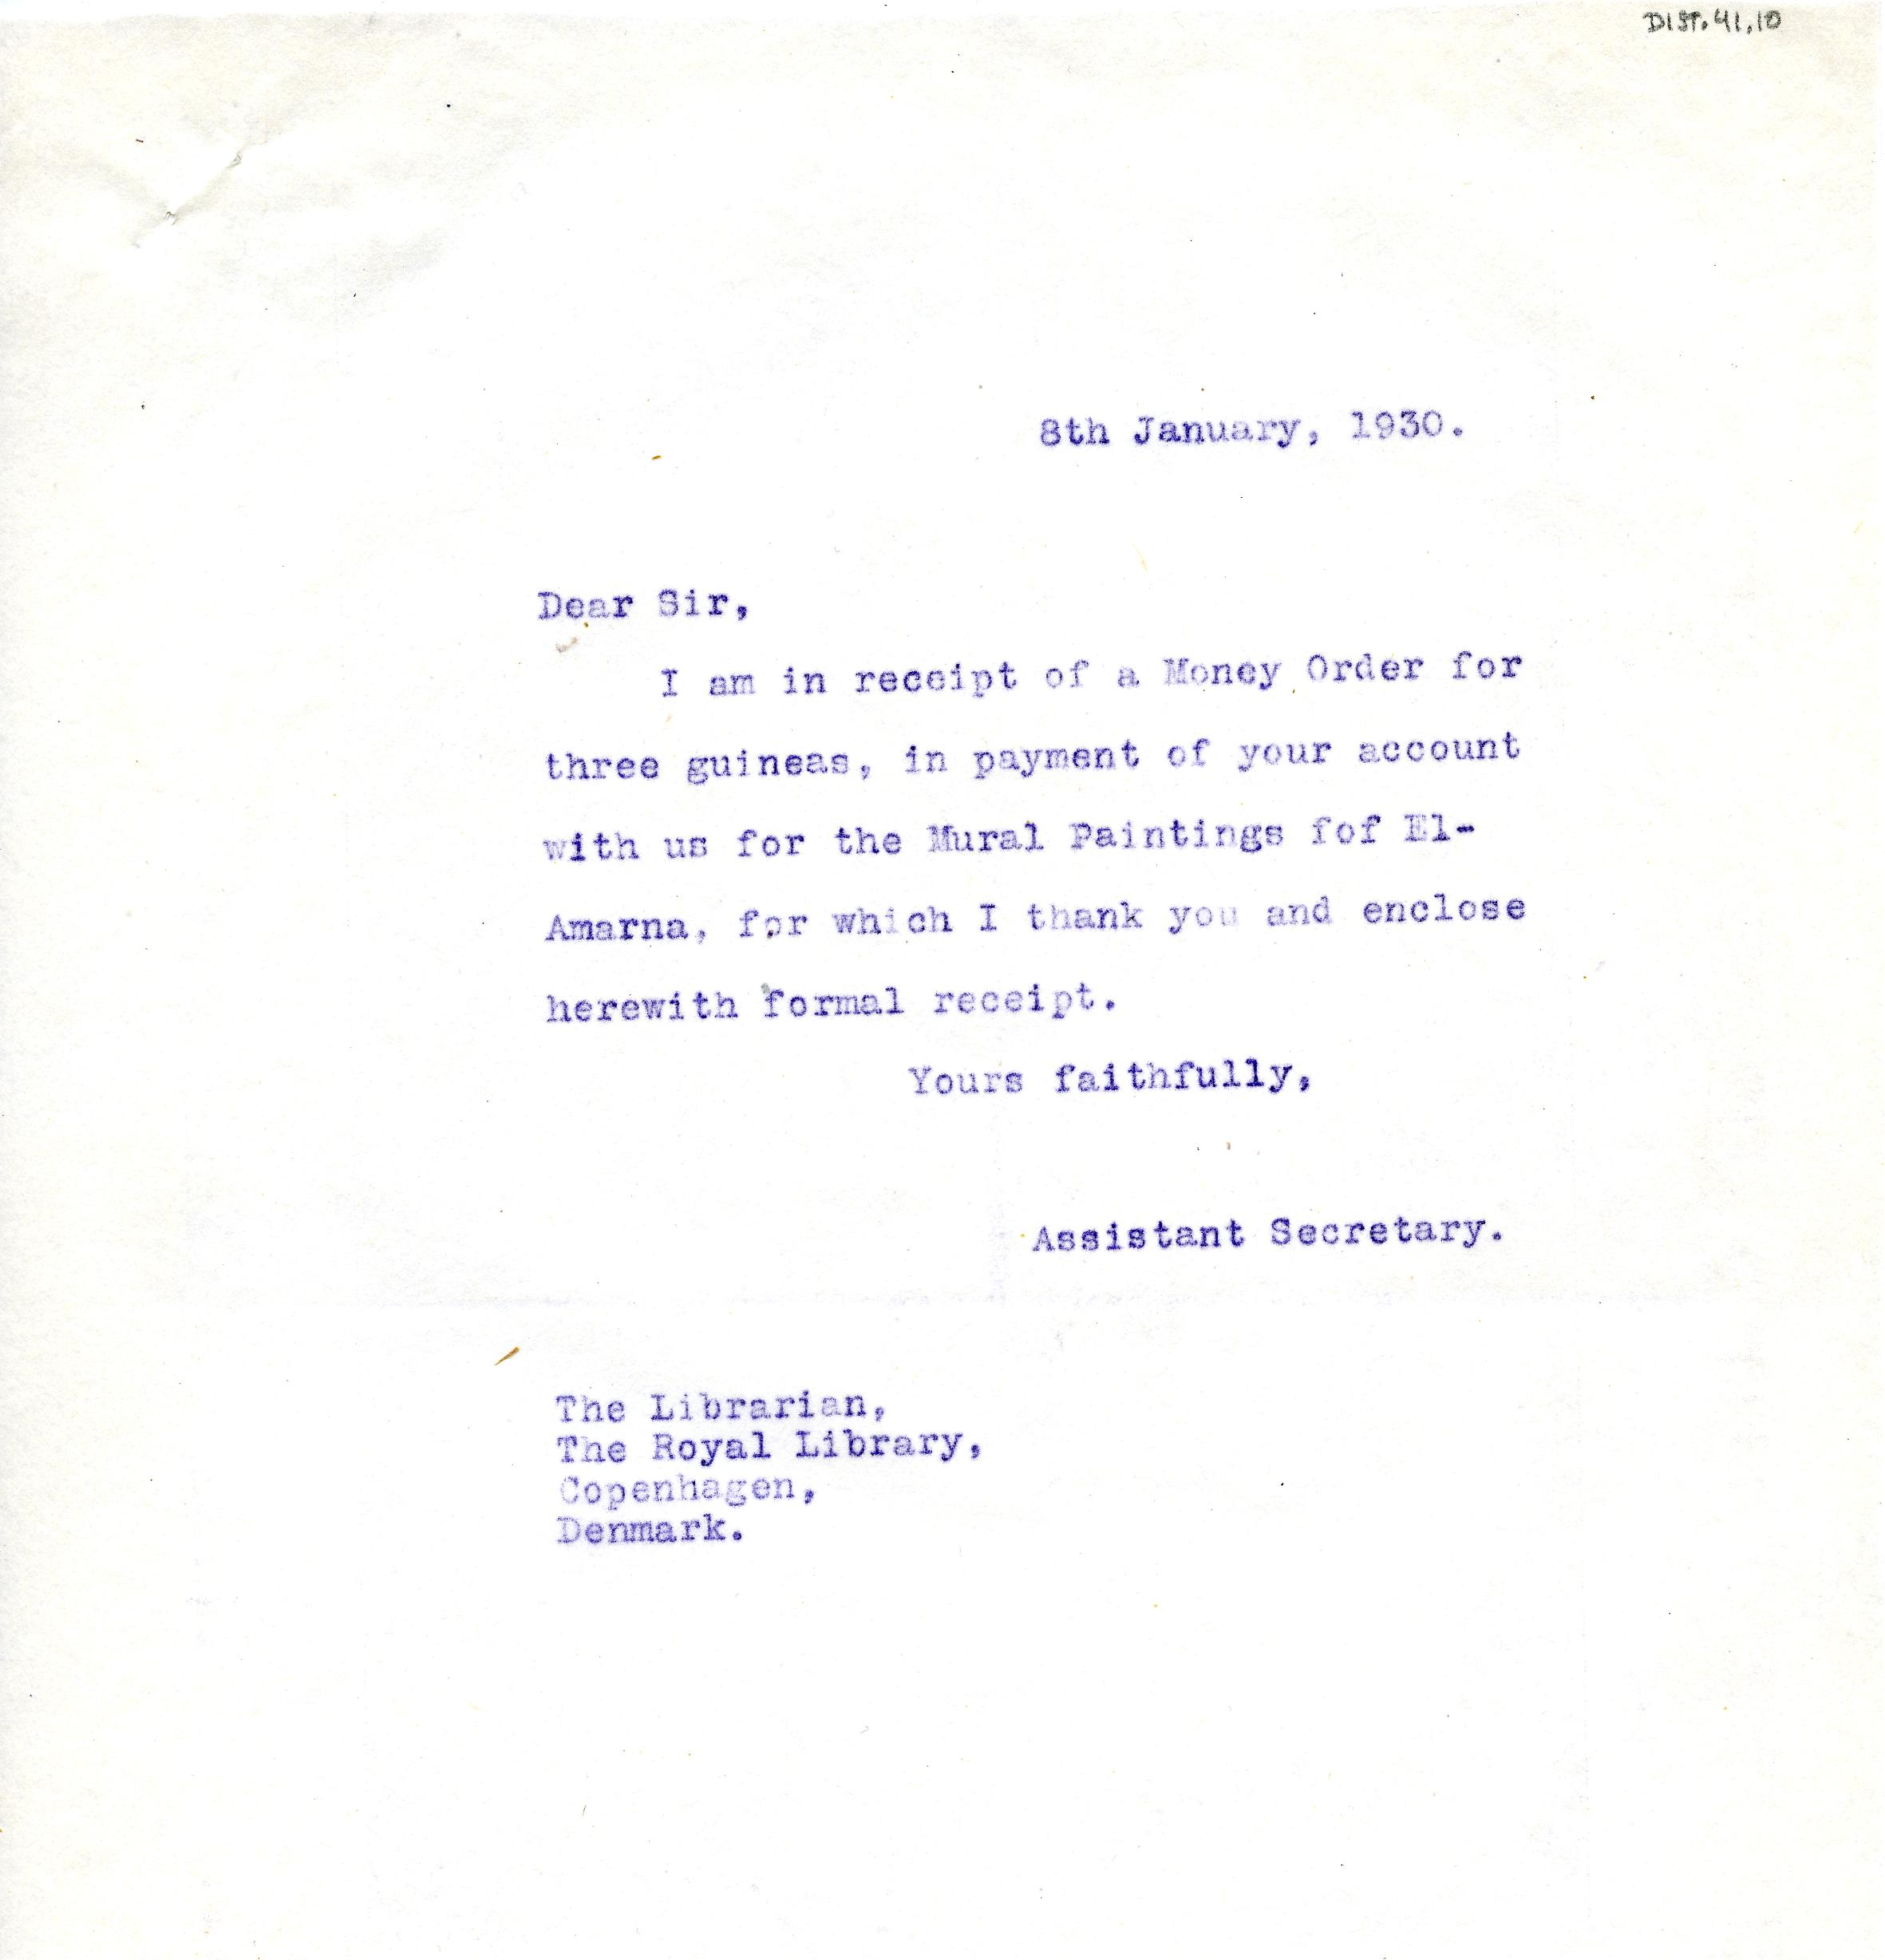 1922-76 Miscellaneous correspondence with museums DIST.41.10